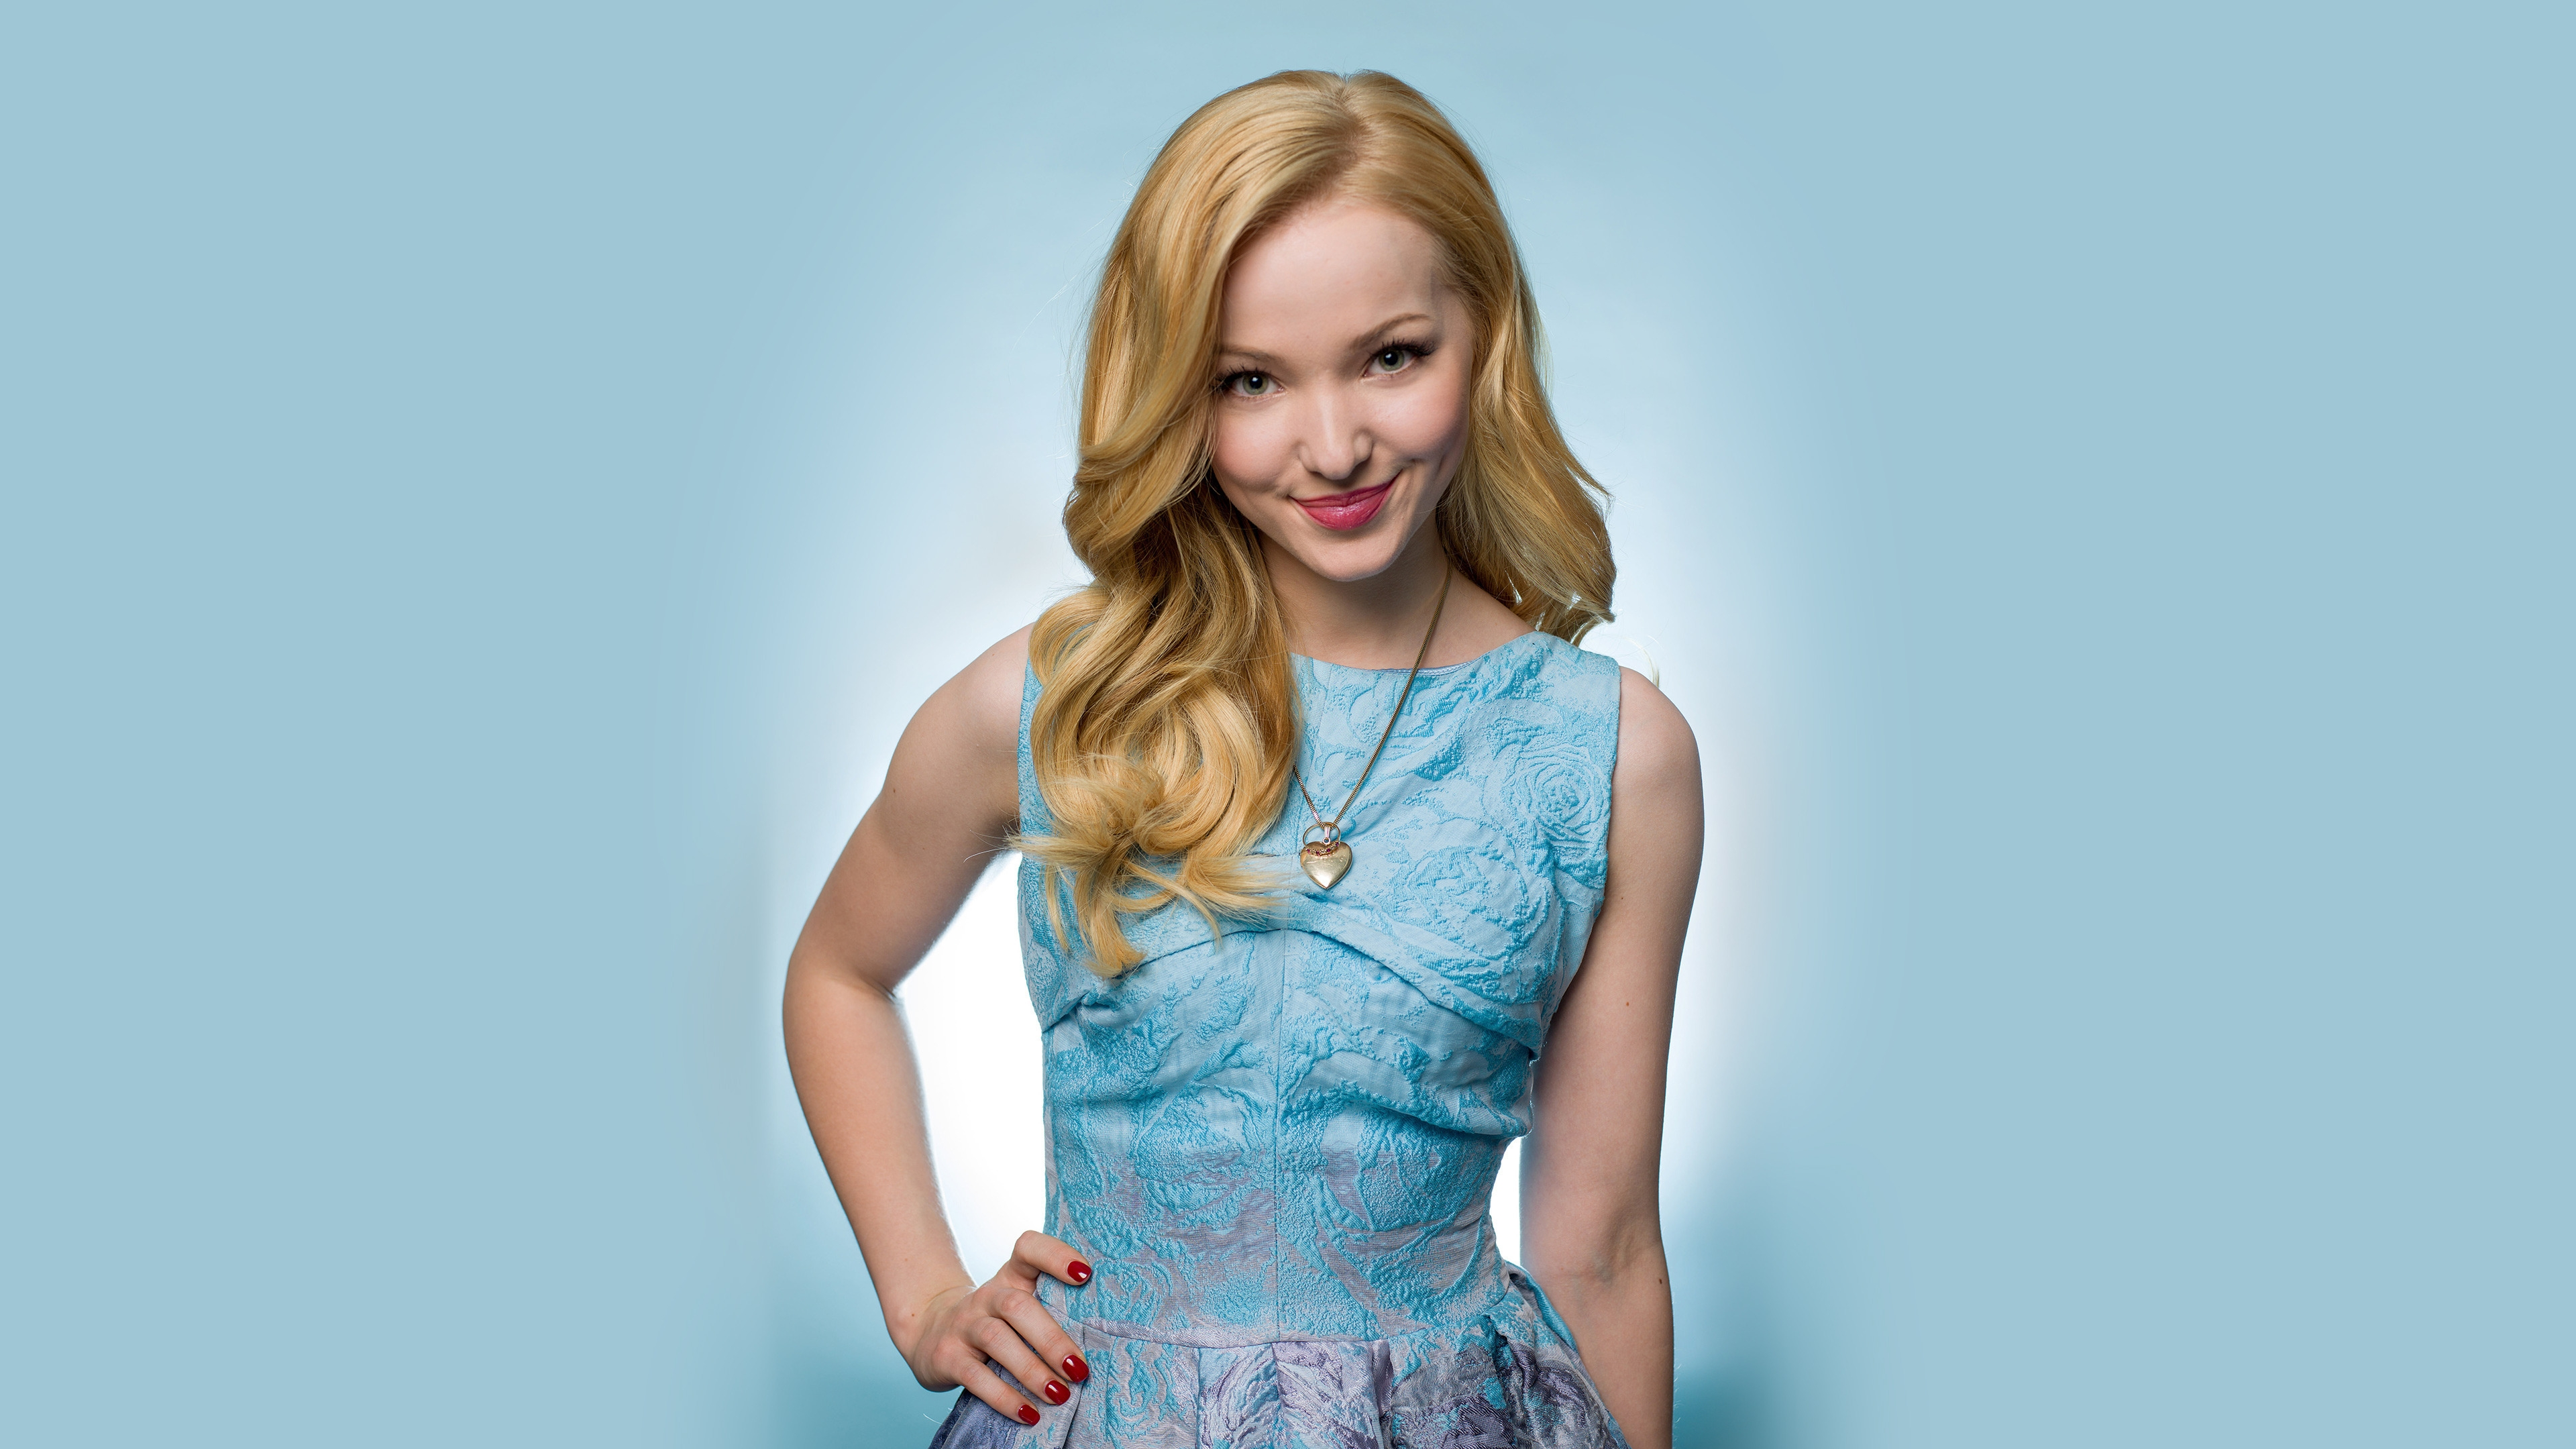 3840x2160 - Dove Cameron Wallpapers 7